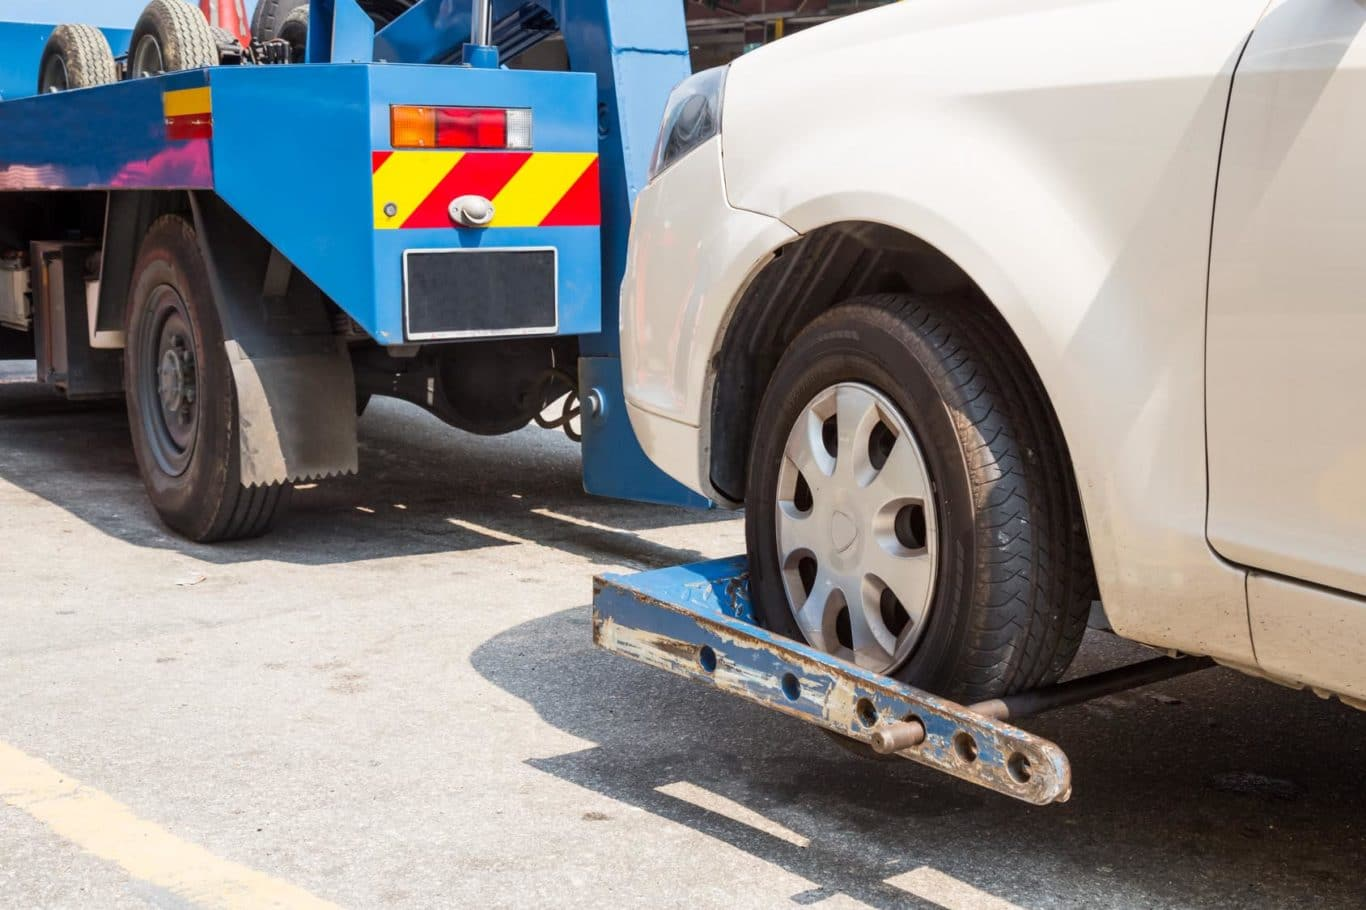 Barndarrig expert Car Towing services